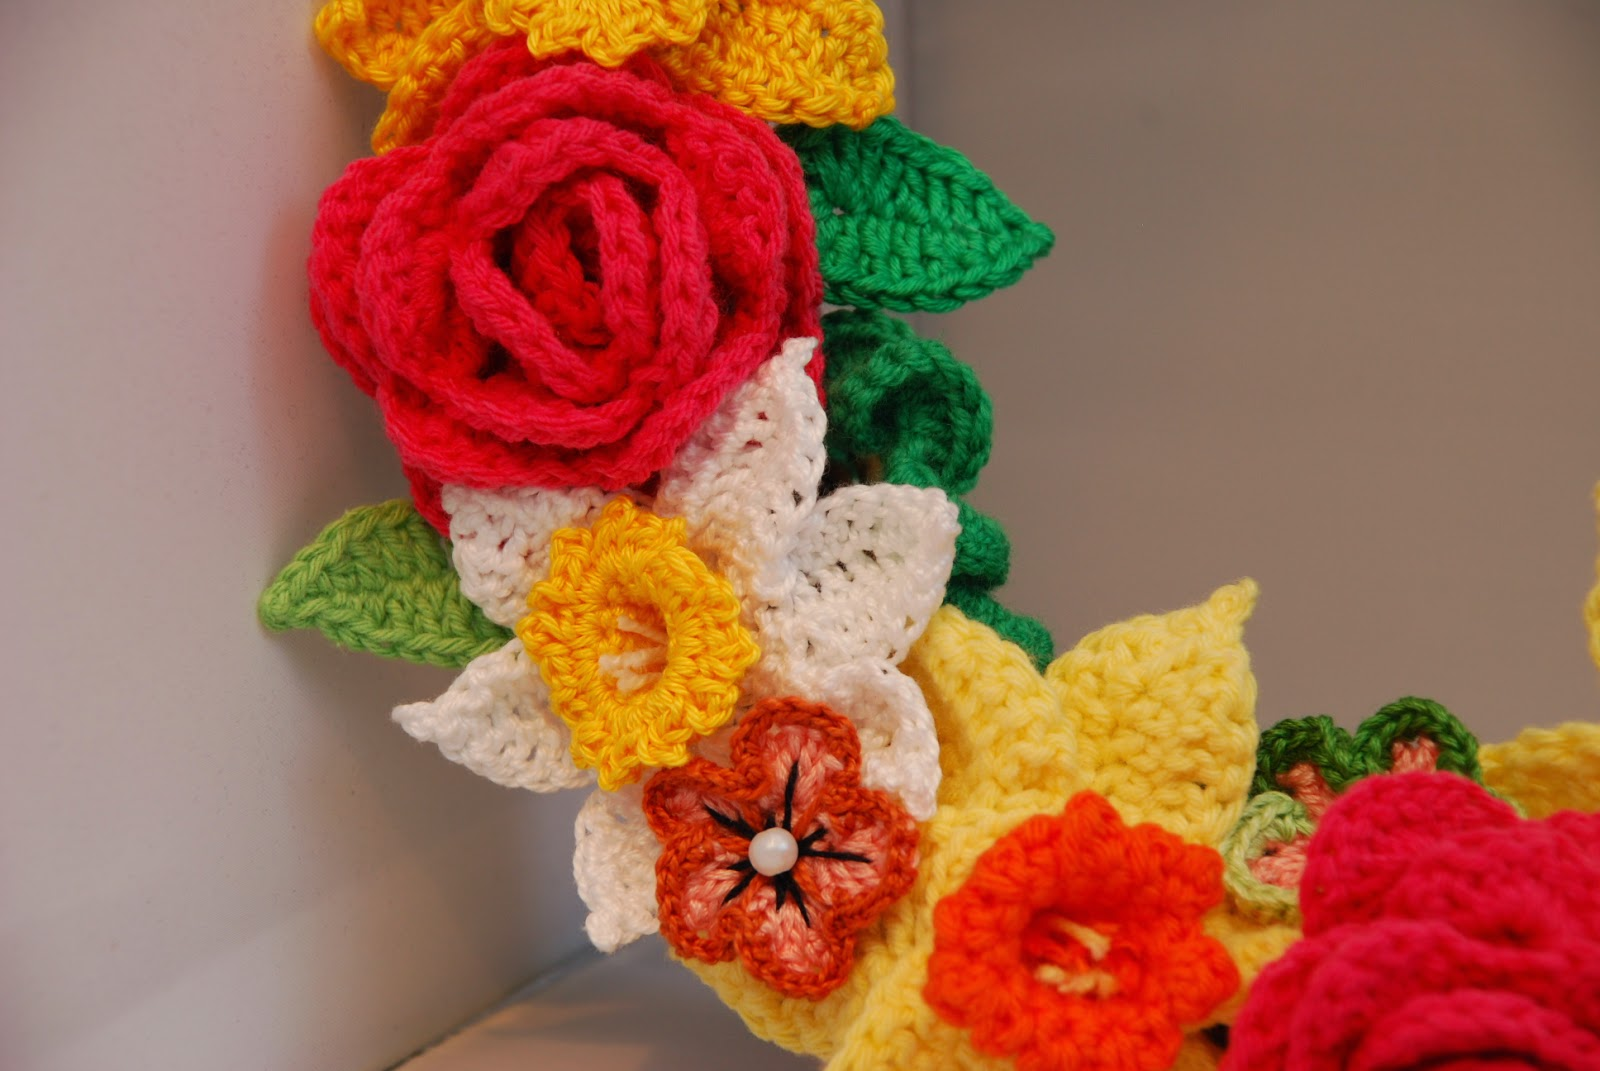 image of crochet Spring wreath; crochet daffodils and roses